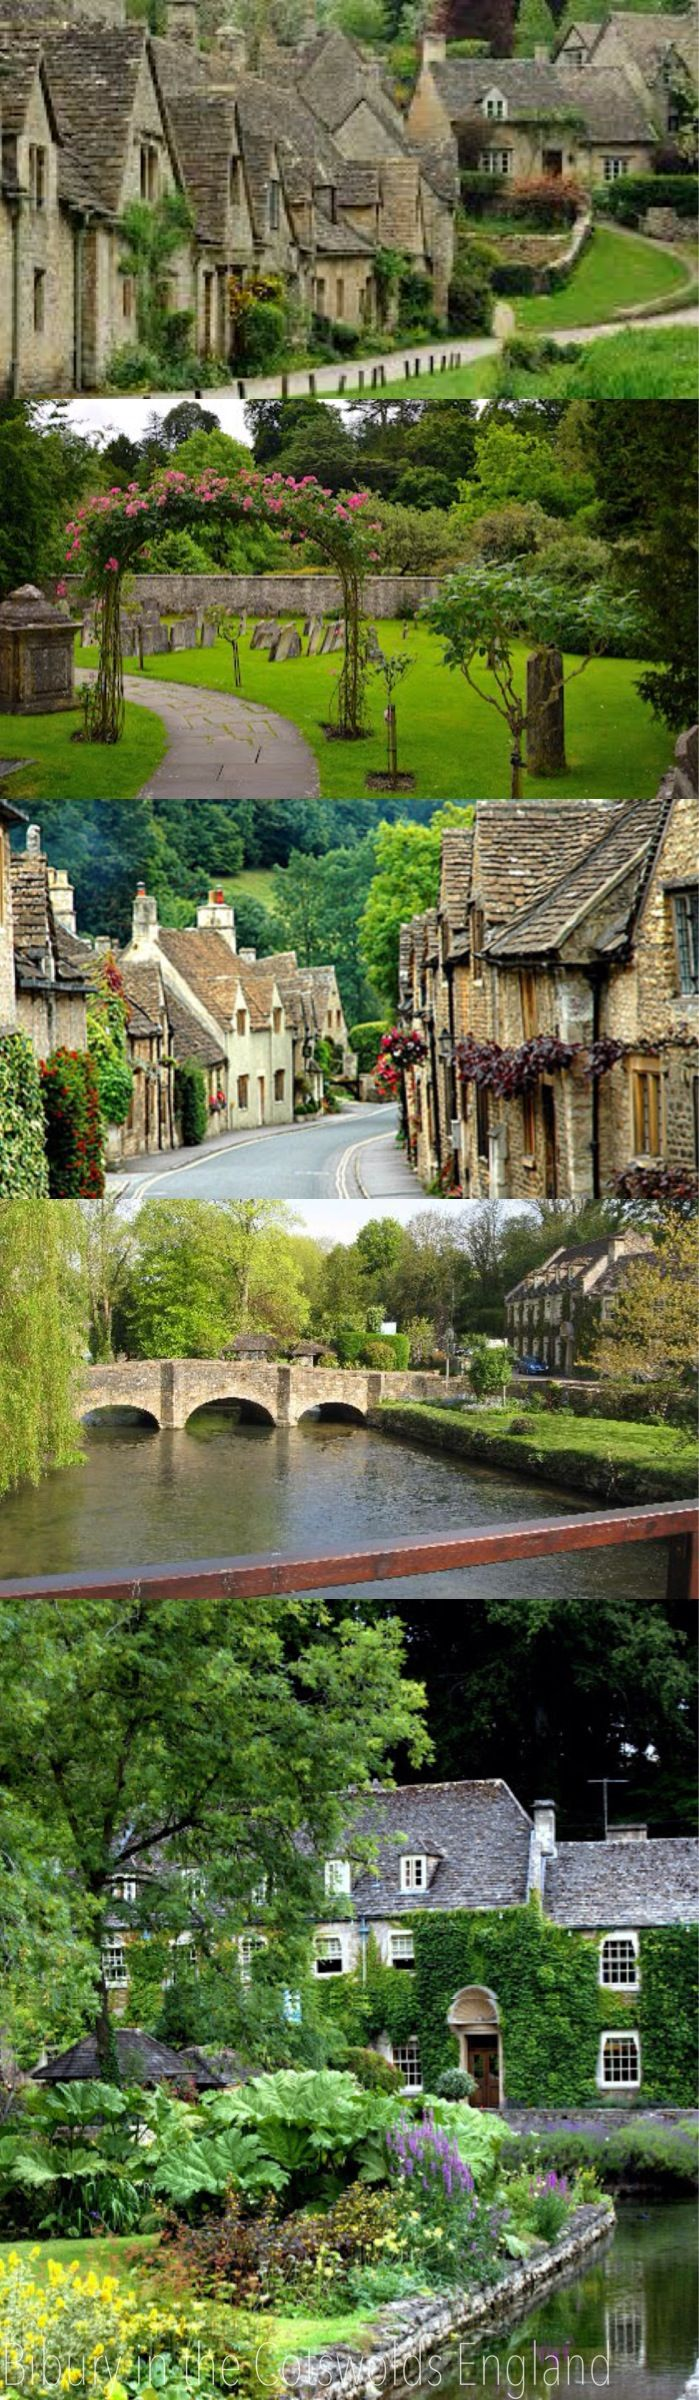 The Cotswolds, England                                                                                                                                                                                 More